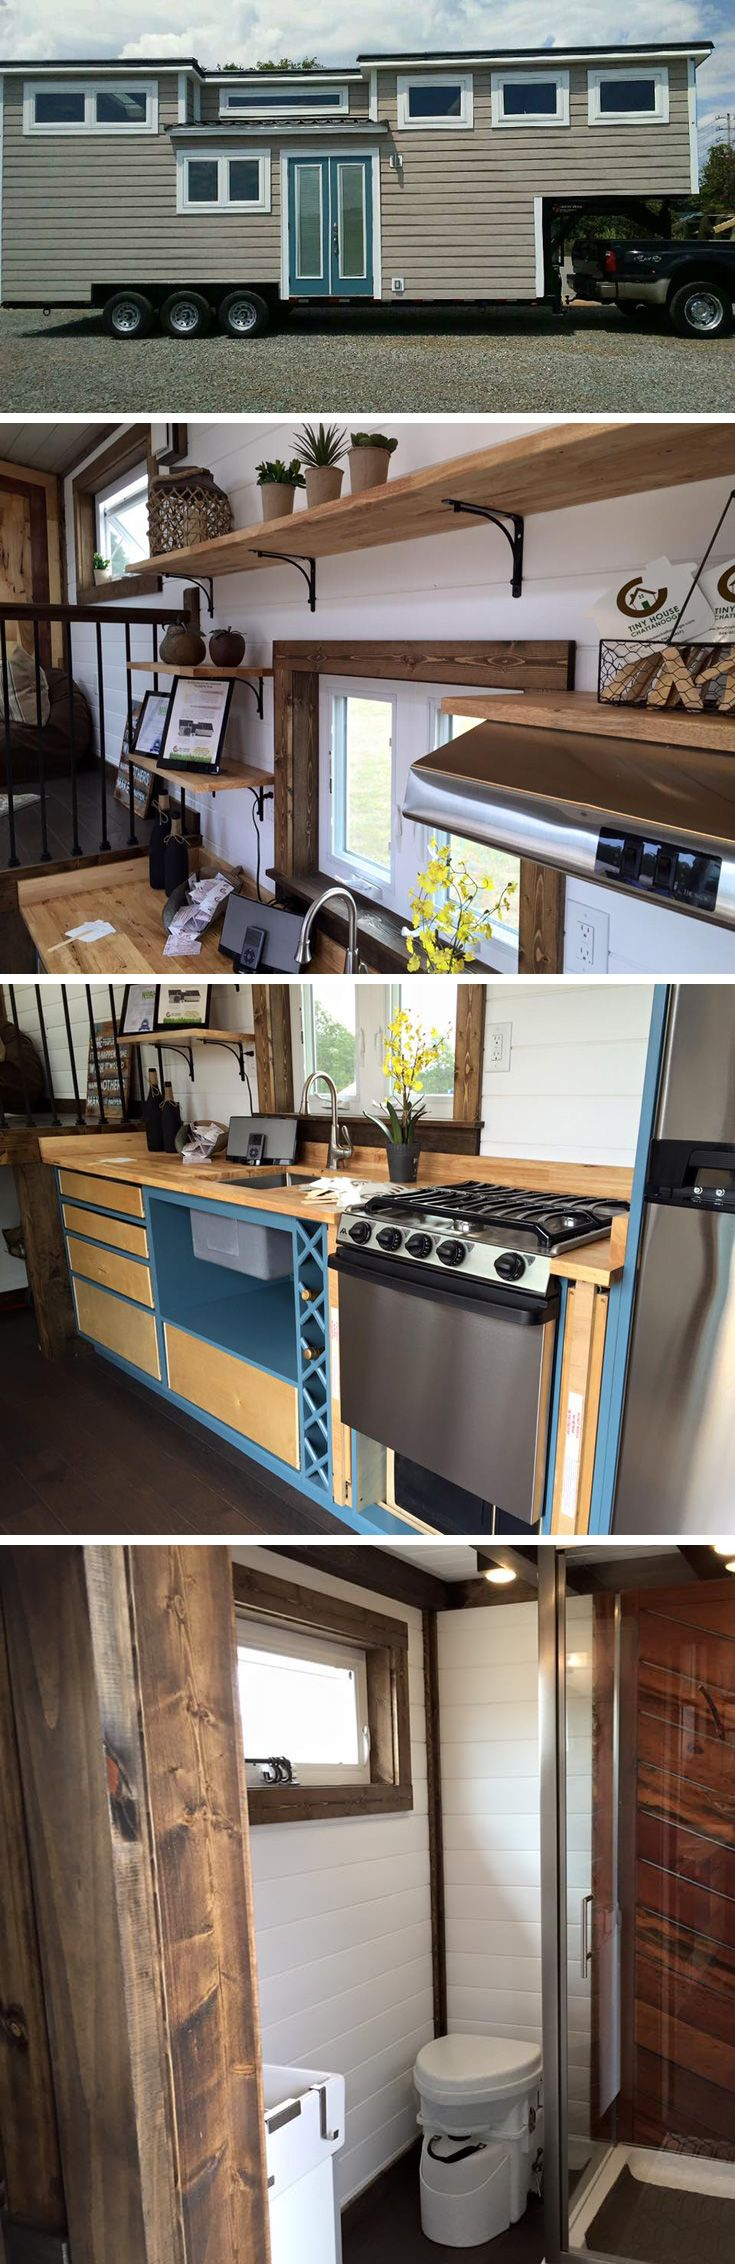 """Voted """"Best in Show"""" at the 2016 Tiny House Jamboree!  A 299 sq.ft. gooseneck tiny house."""